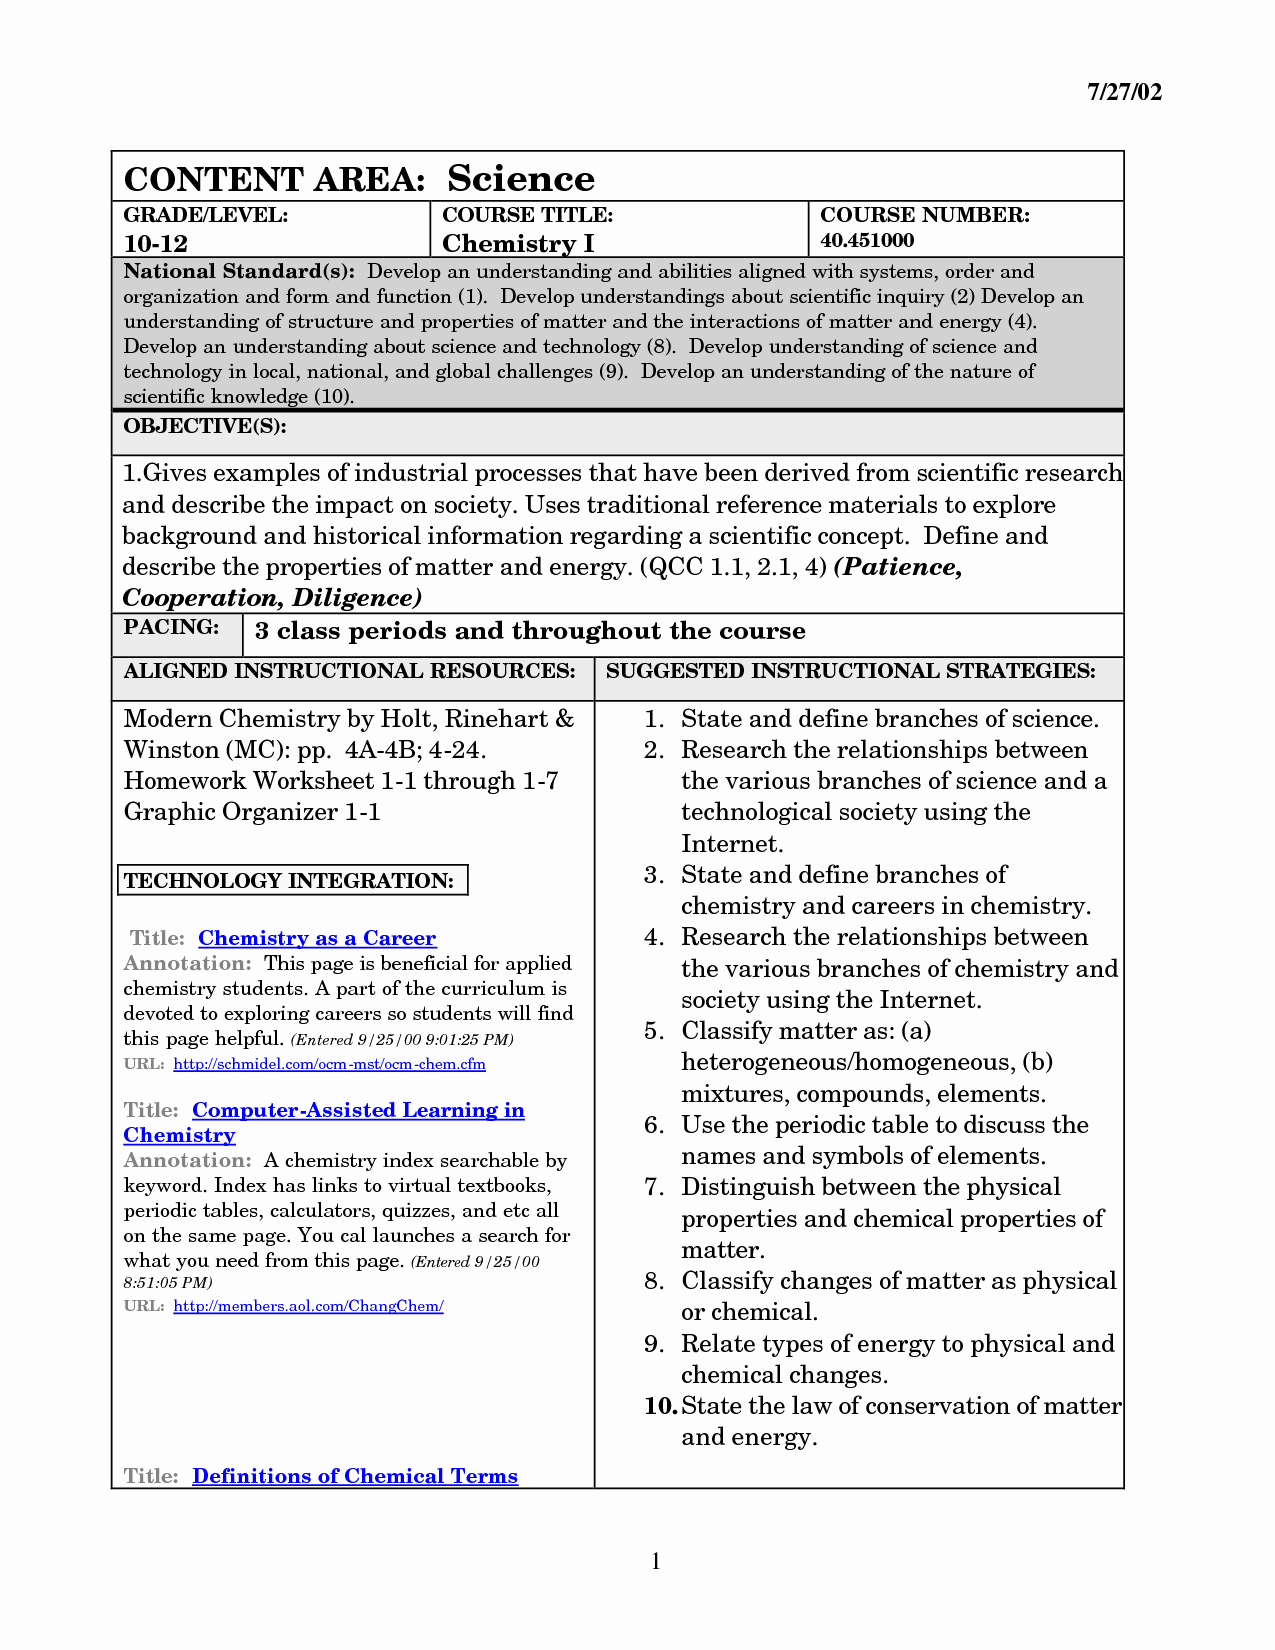 50 Nuclear Decay Worksheet Answers Key